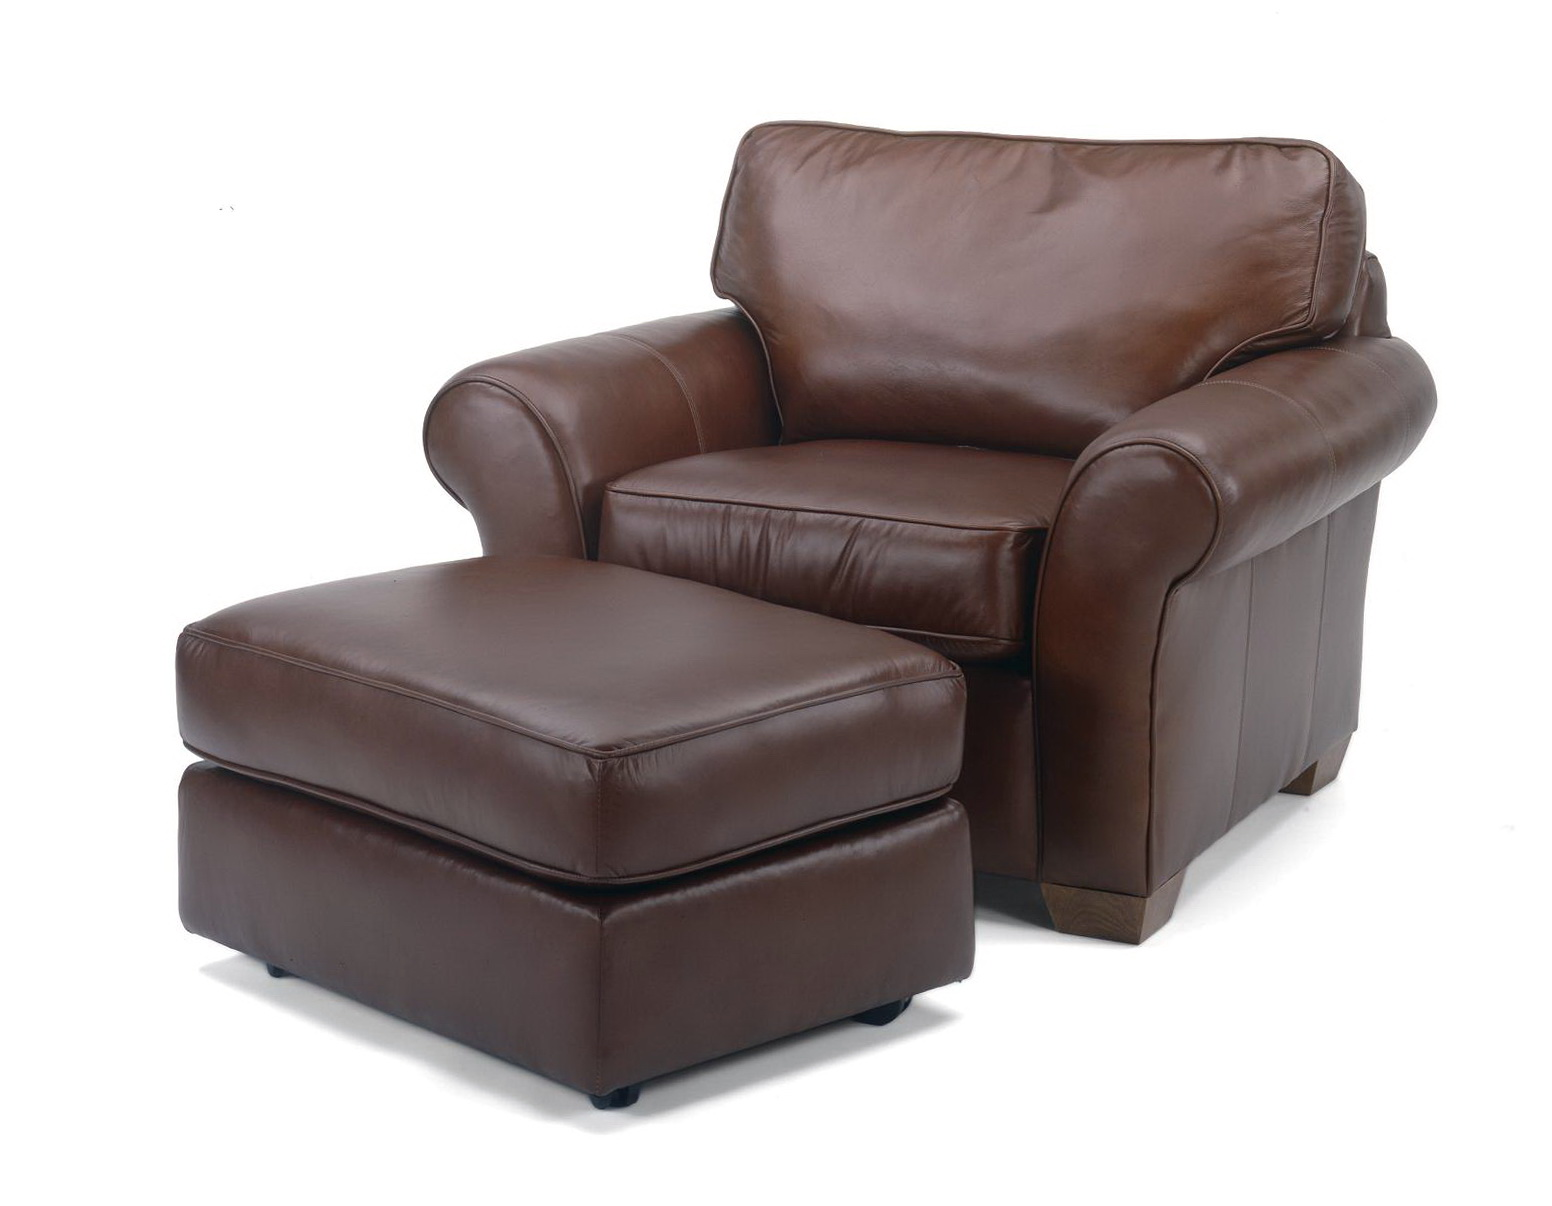 Oversized Chair With Ottoman Leather